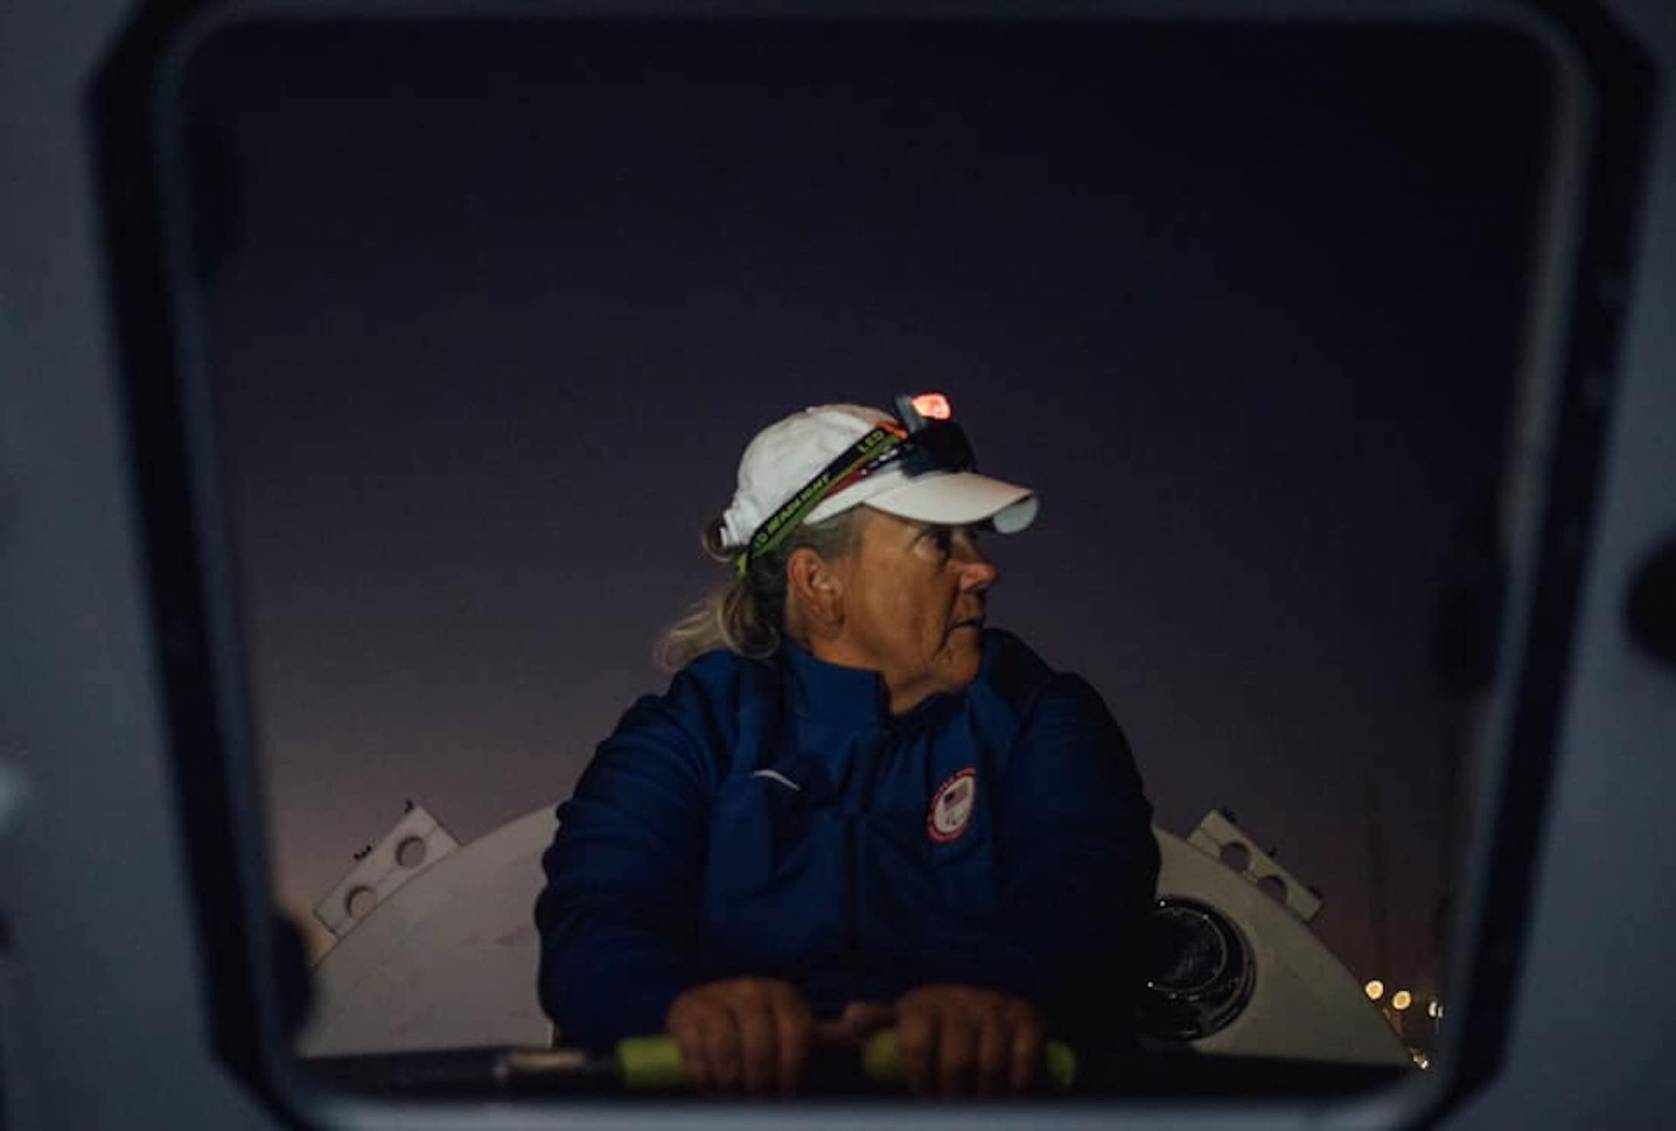 angela madsen rowing in hat and headlamp